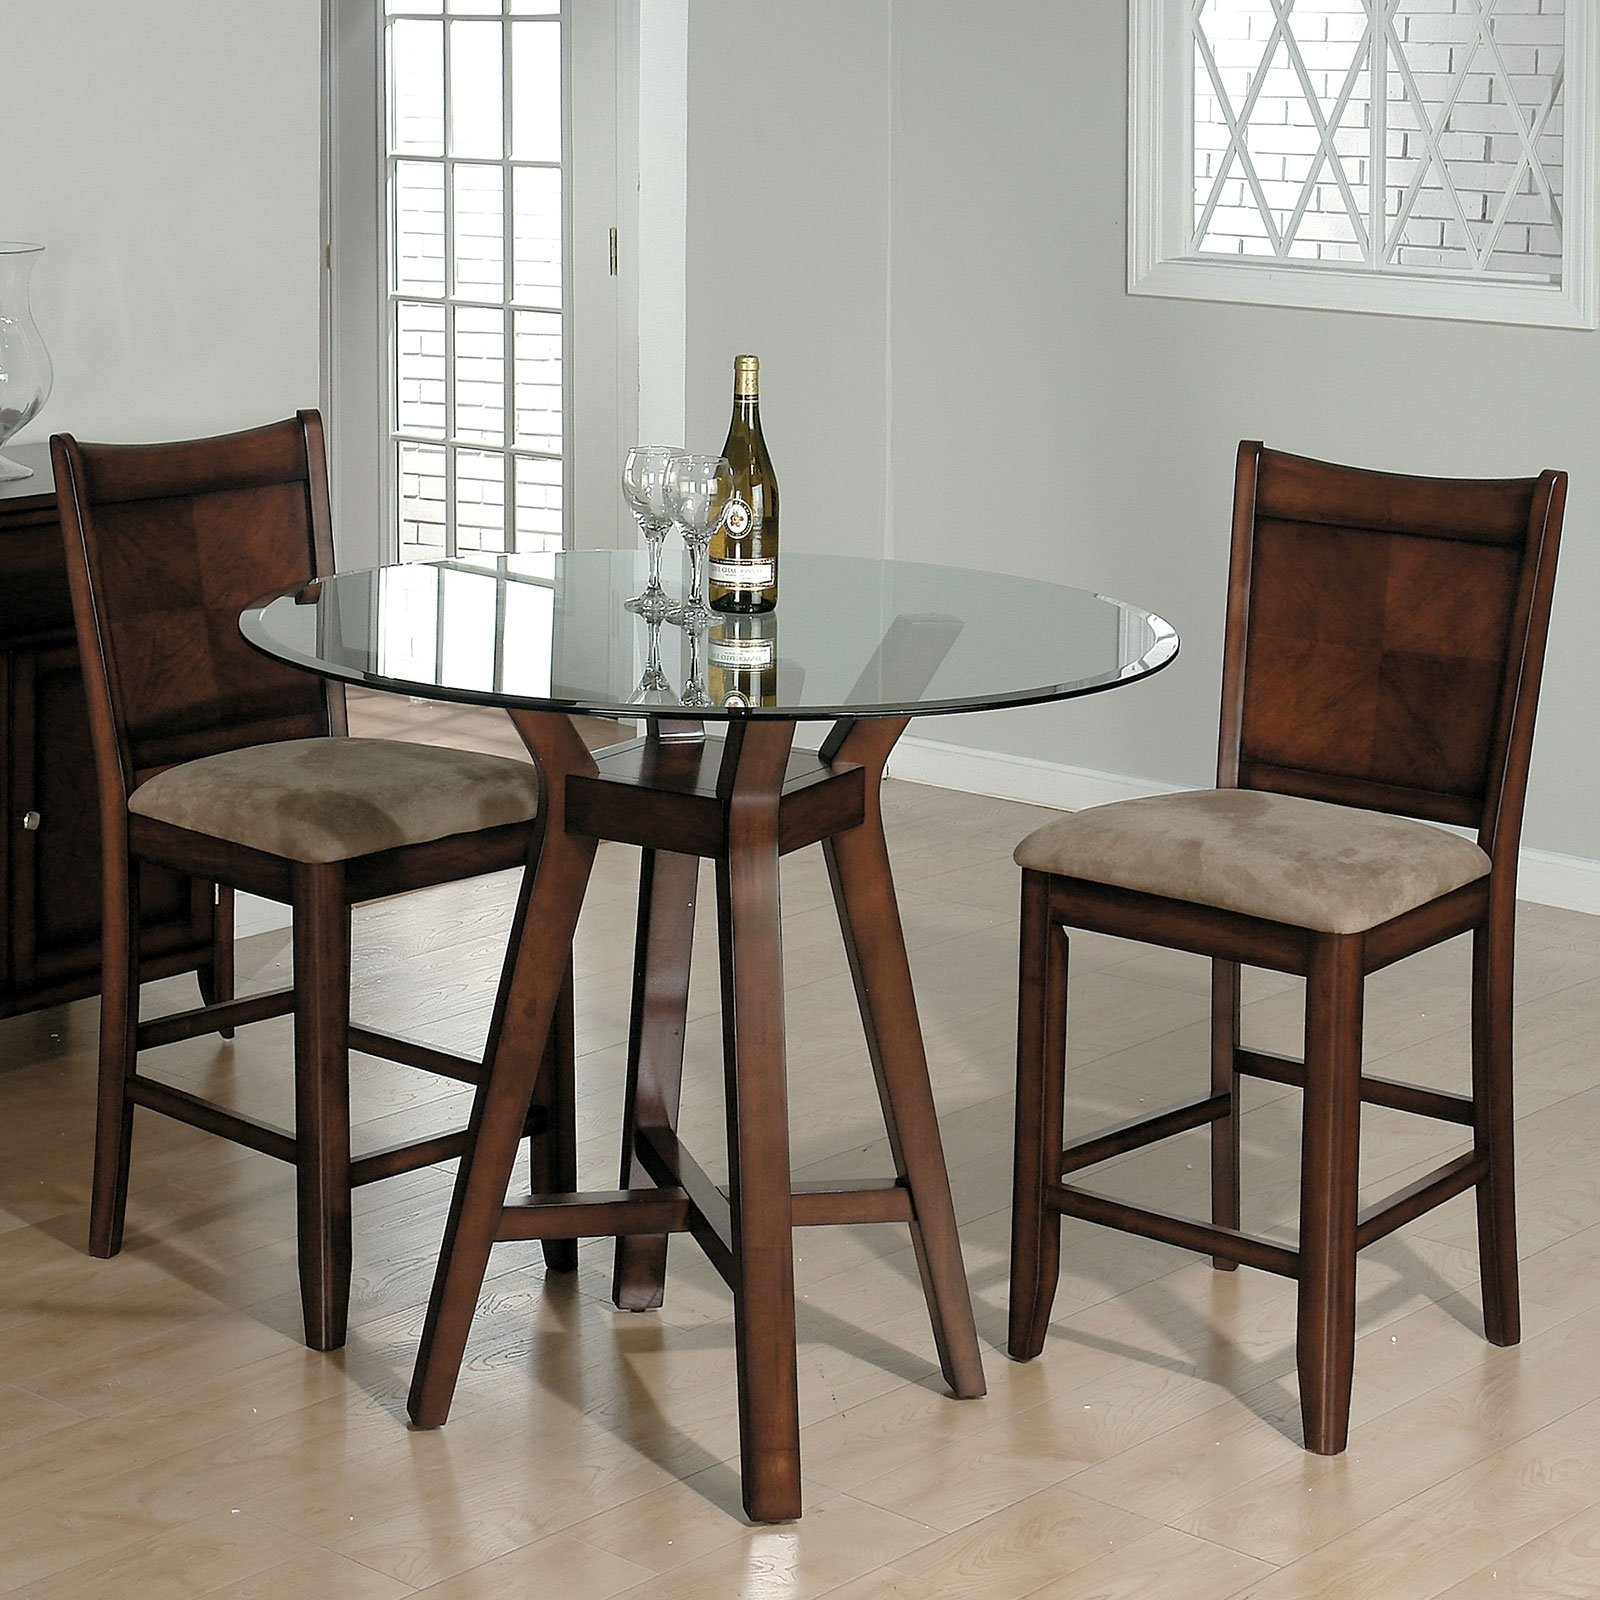 Permalink to Bistro Style Kitchen Table Sets